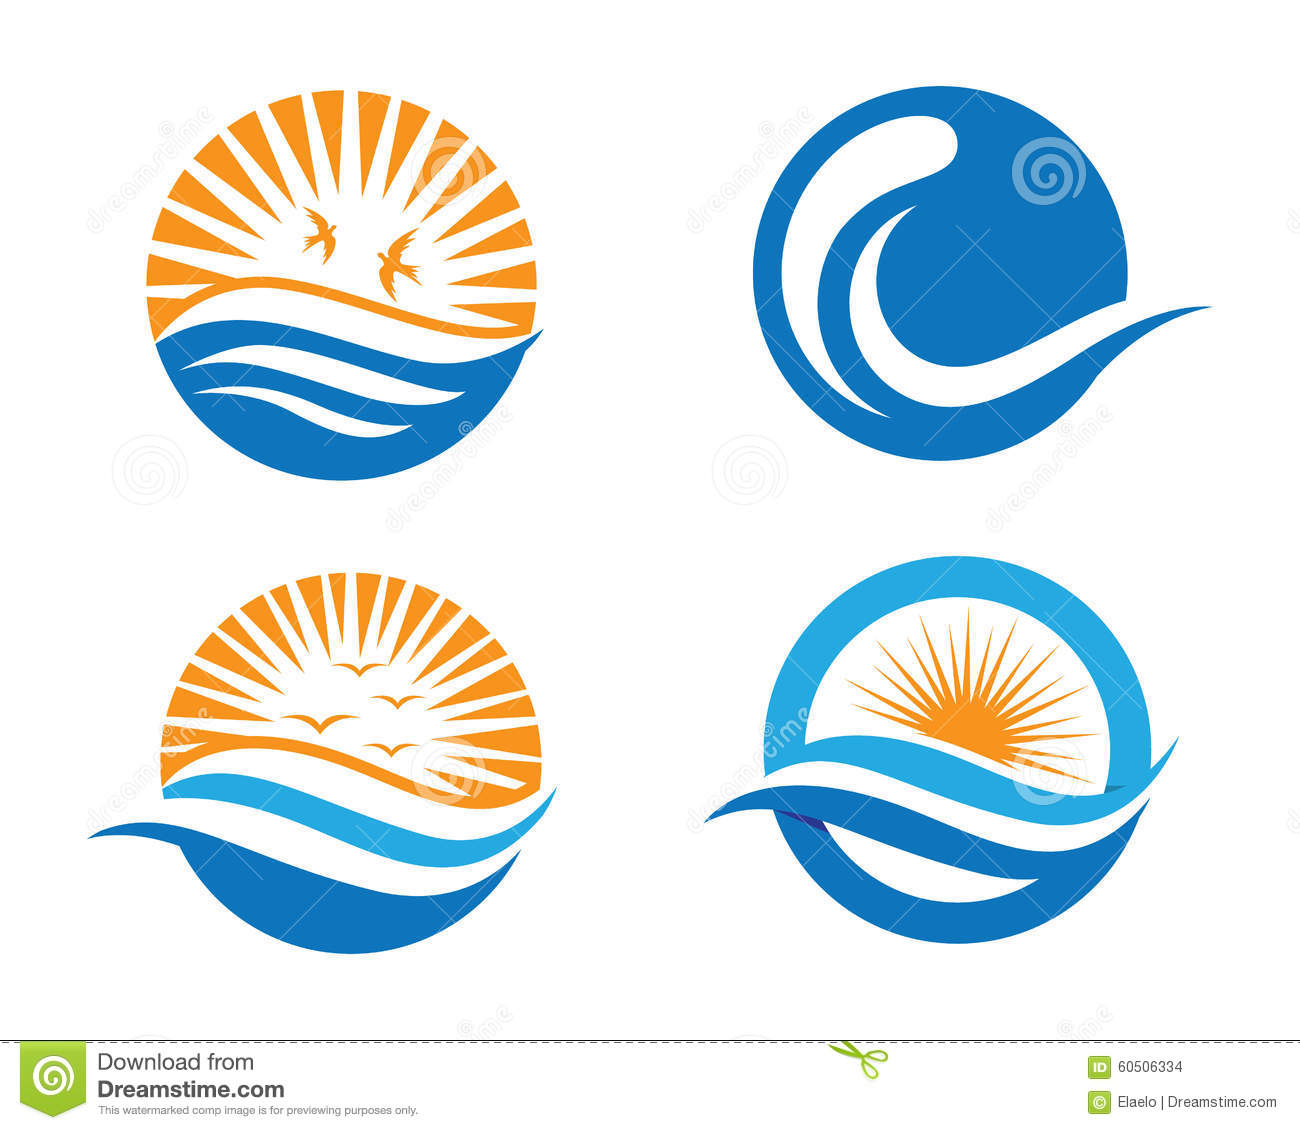 Ocean beach wave logo stock vector. Image of limitless ...